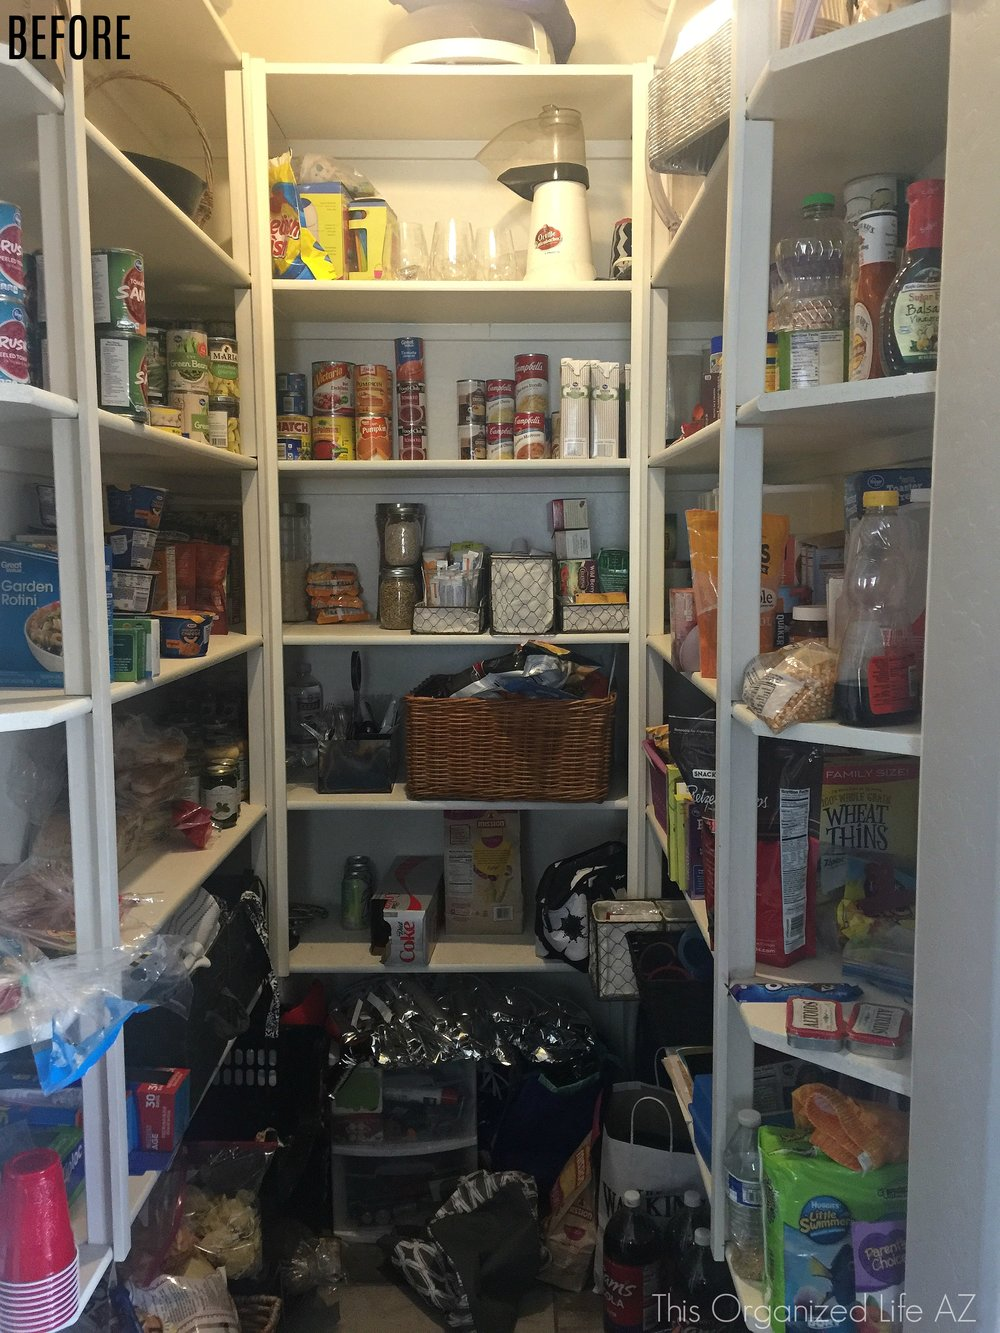 Tips for creating a Pinterest worthy pantry from This Organized Life AZ